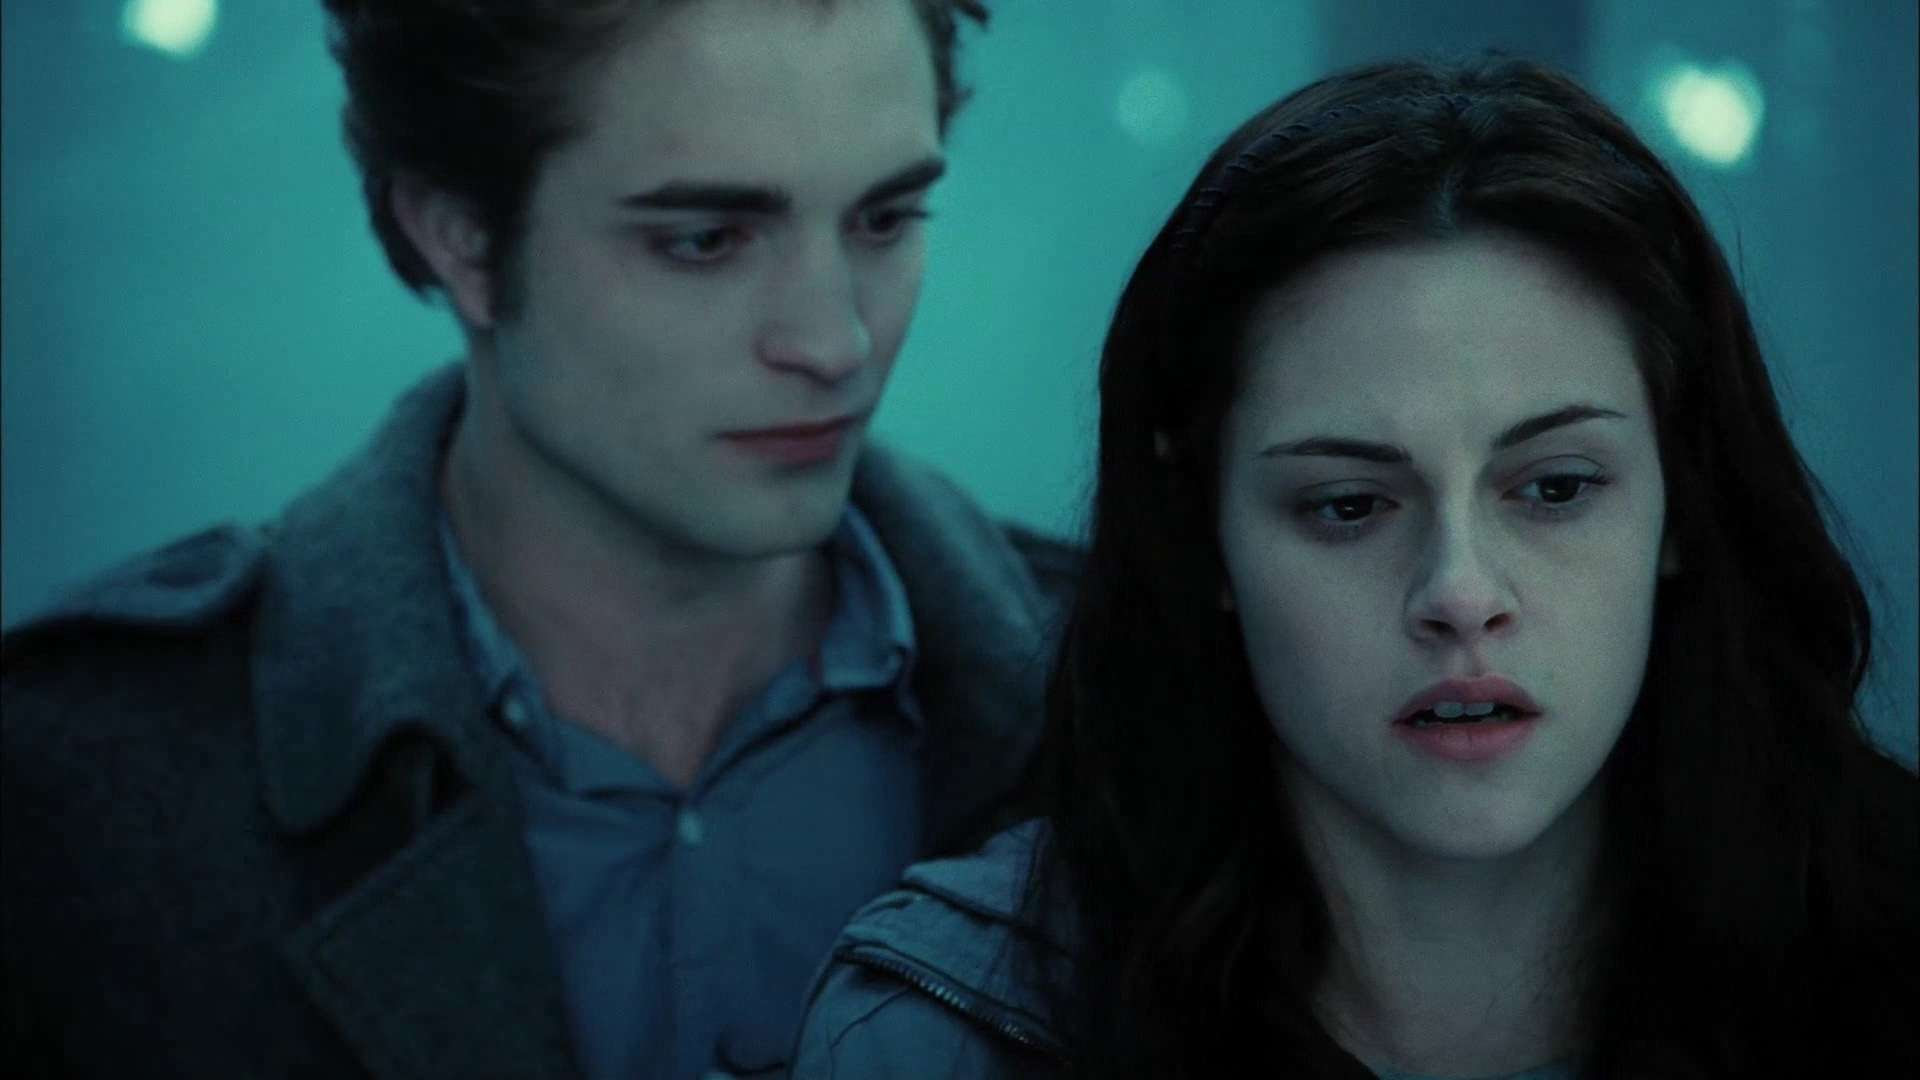 View Of Edward And Bella In Twilight Wallpaper Hd Wallpapers